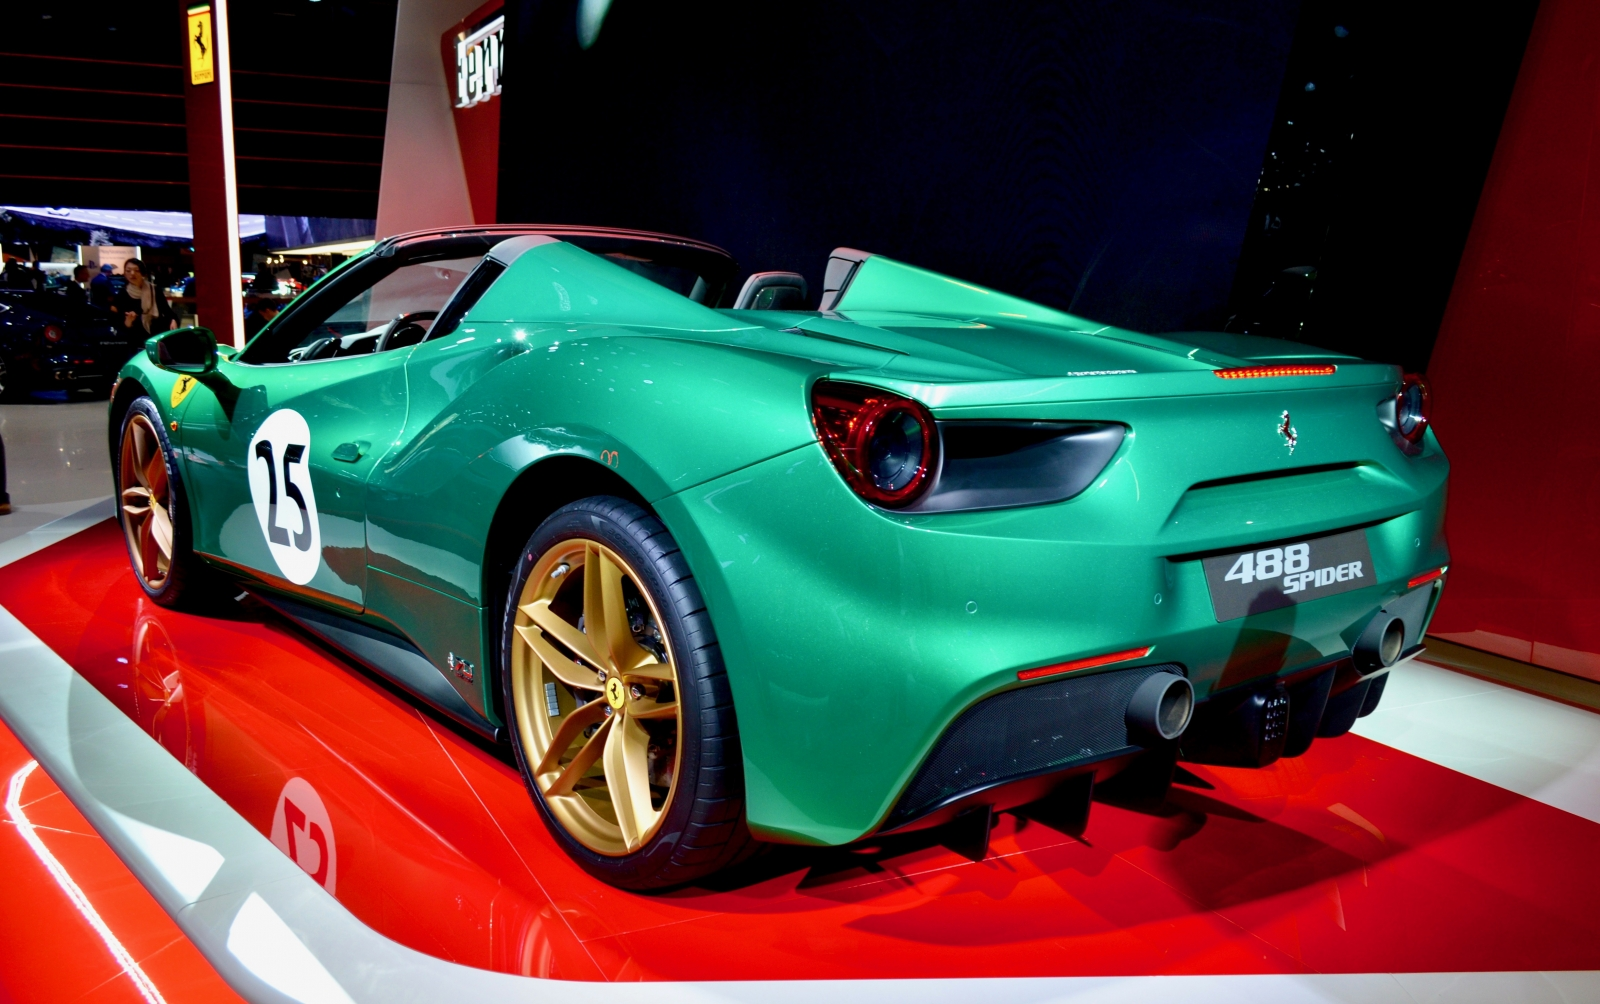 ferrari-488-spider-green-jewel